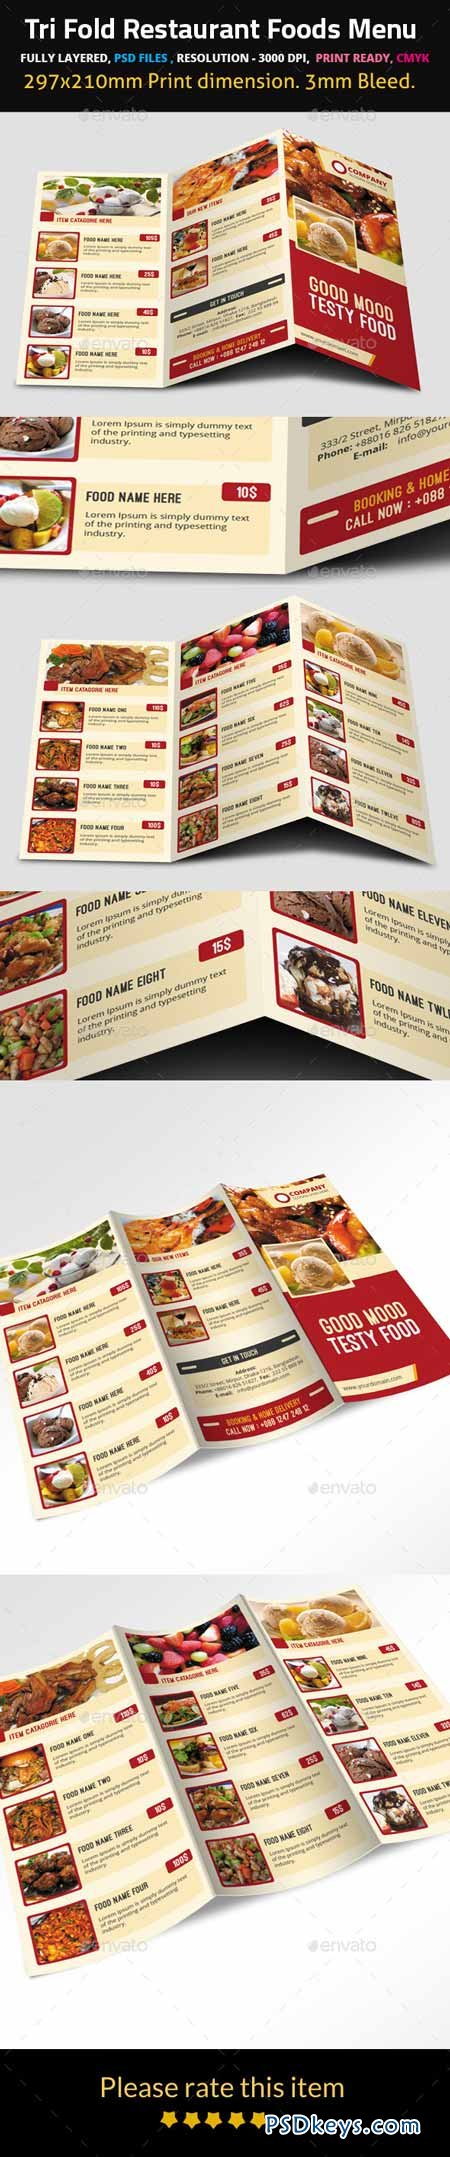 Tri Fold Restaurant Foods Menu 9500024